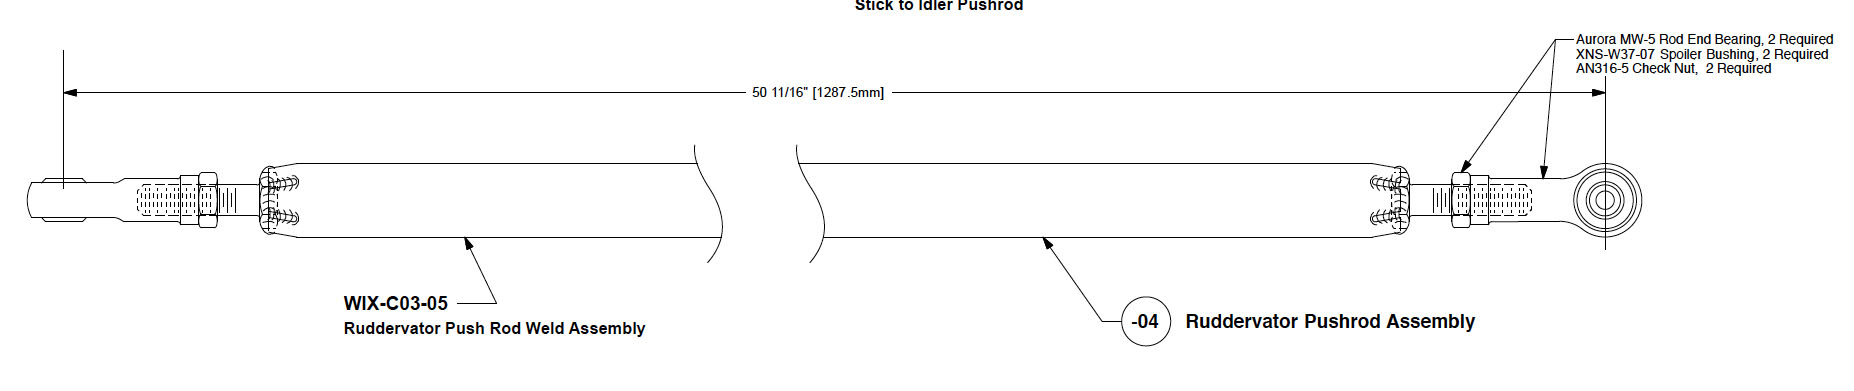 added -04 ruddervator pushrod assembly